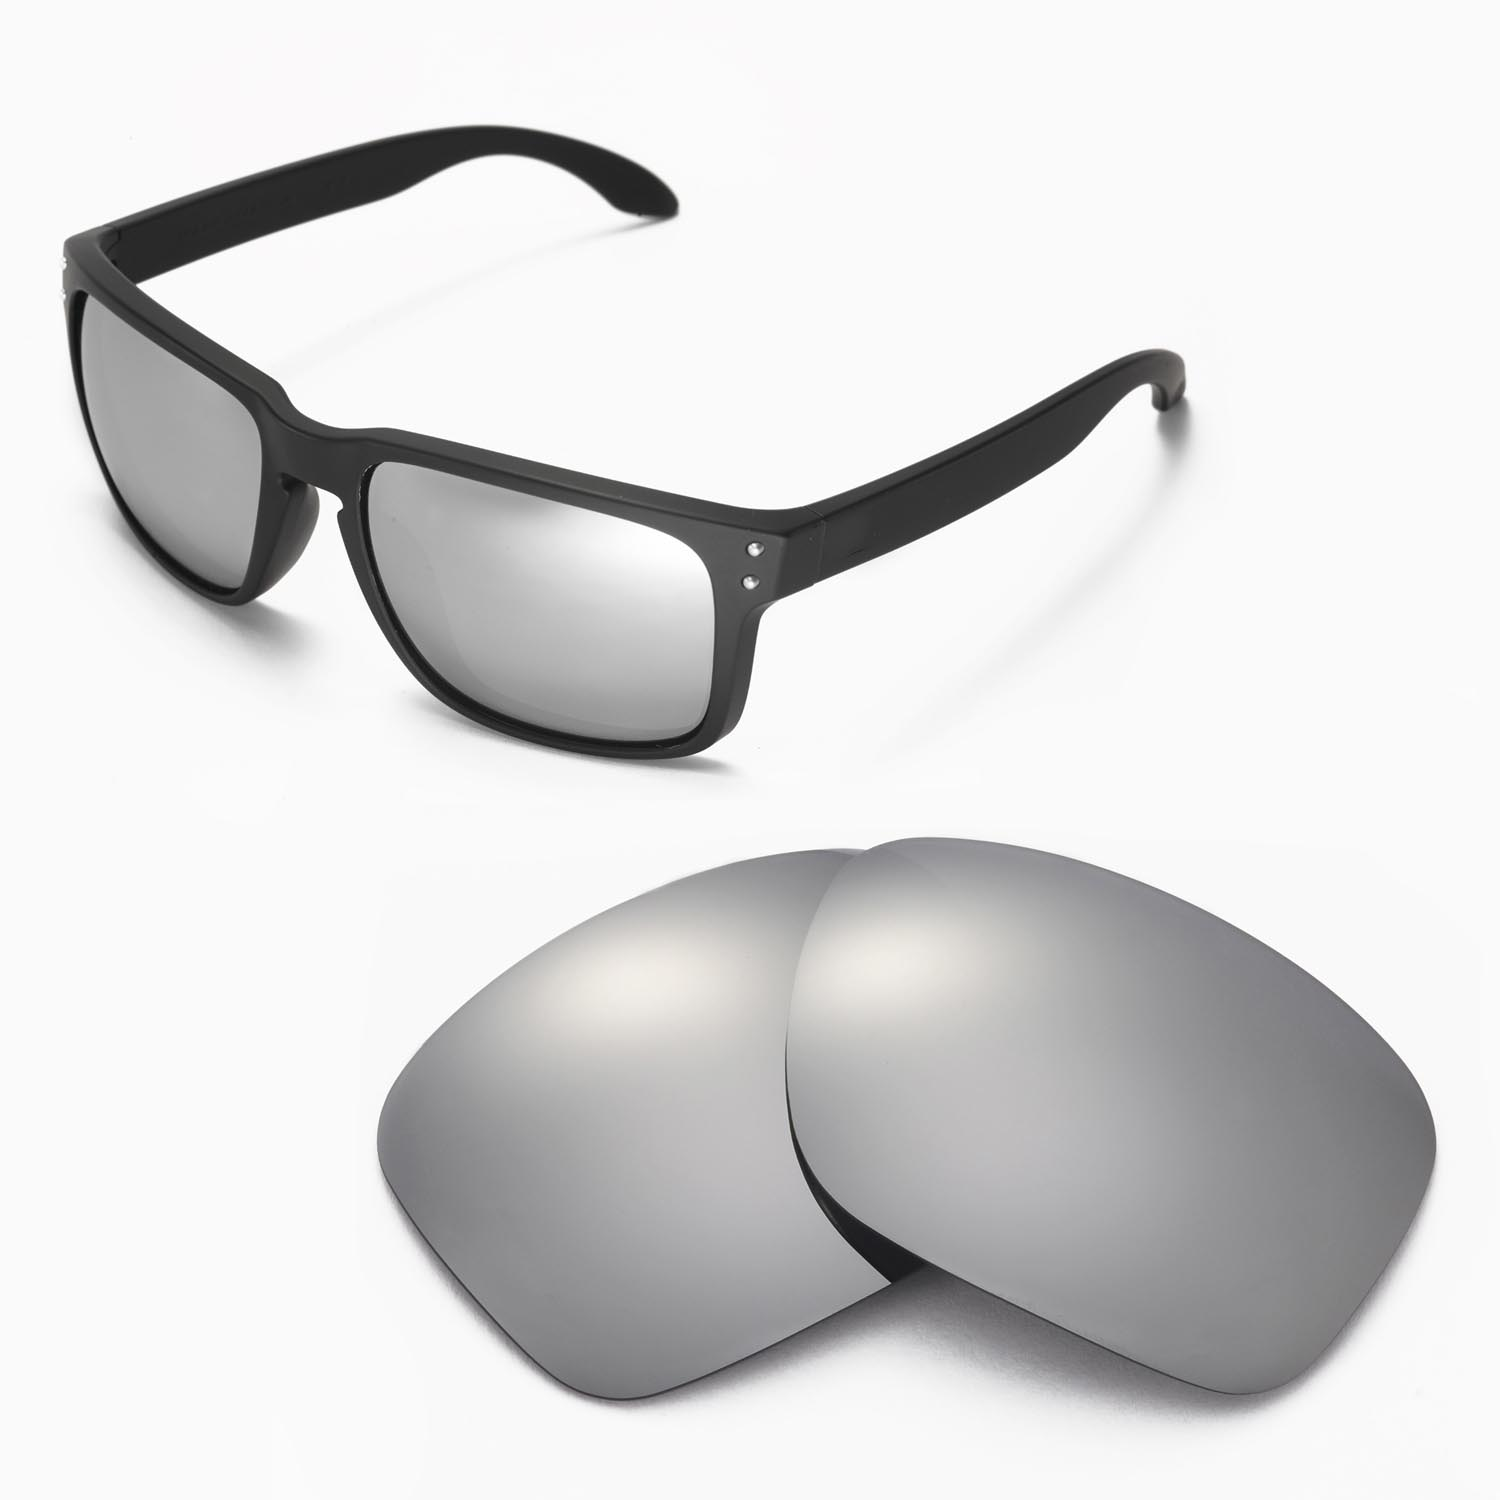 f081fceebb Details about New Walleva Titanium Replacement Lenses For Oakley Holbrook  Sunglasses